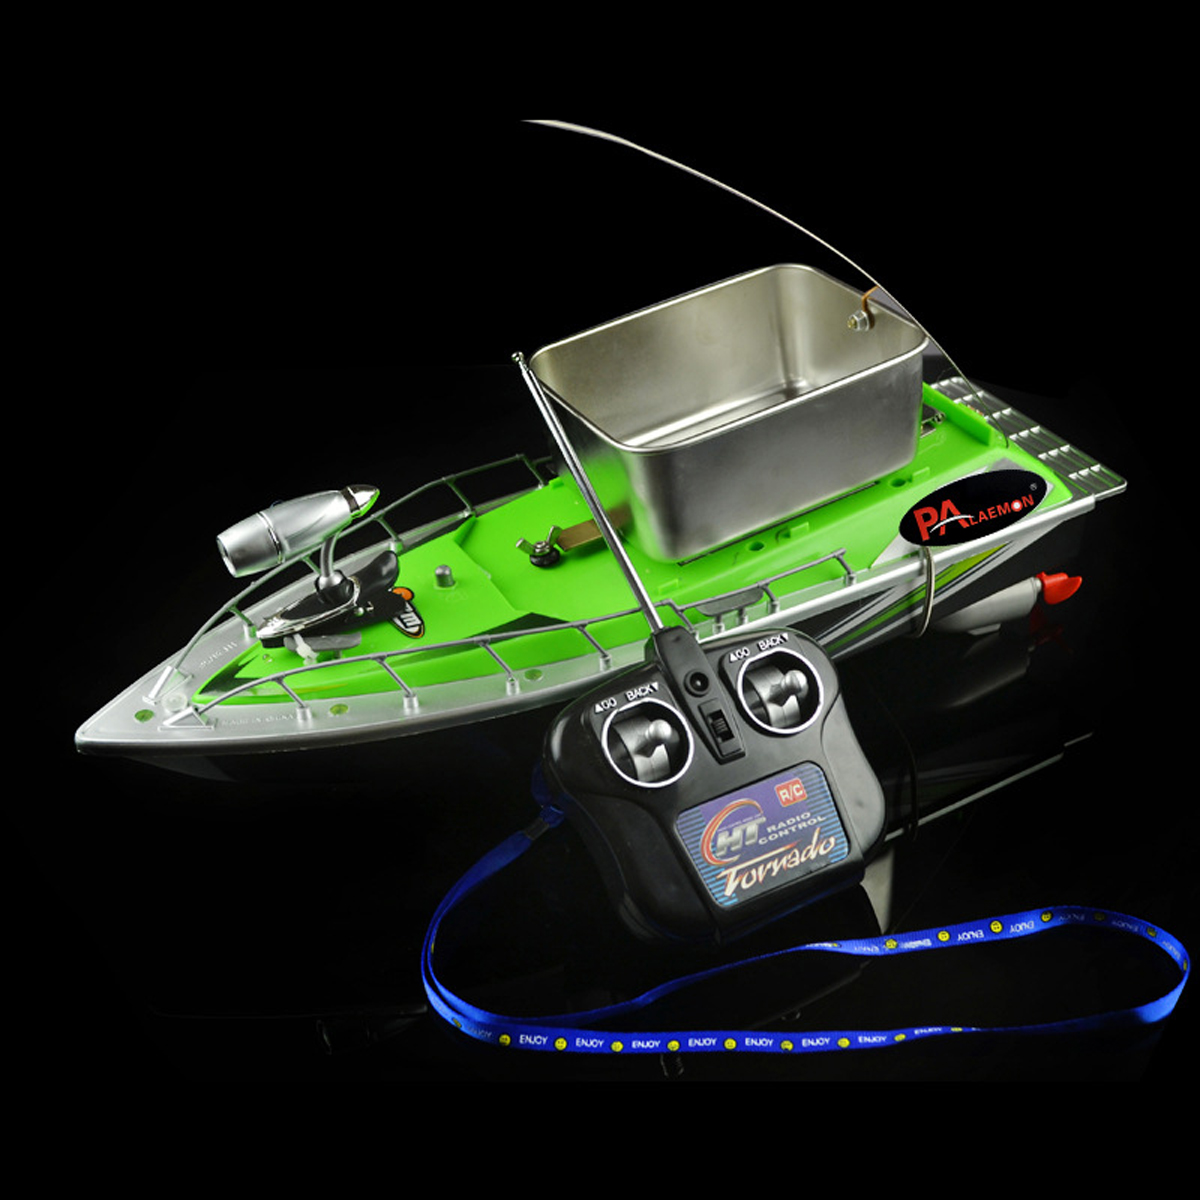 Speedboat Rc Bait <font><b>Boat</b></font> Carp <font><b>Hull</b></font> for Fishing Bait Mini Speed <font><b>Boat</b></font> Remote Control <font><b>Boat</b></font> Radio Control Light Toy Finder <font><b>Model</b></font> Ship image